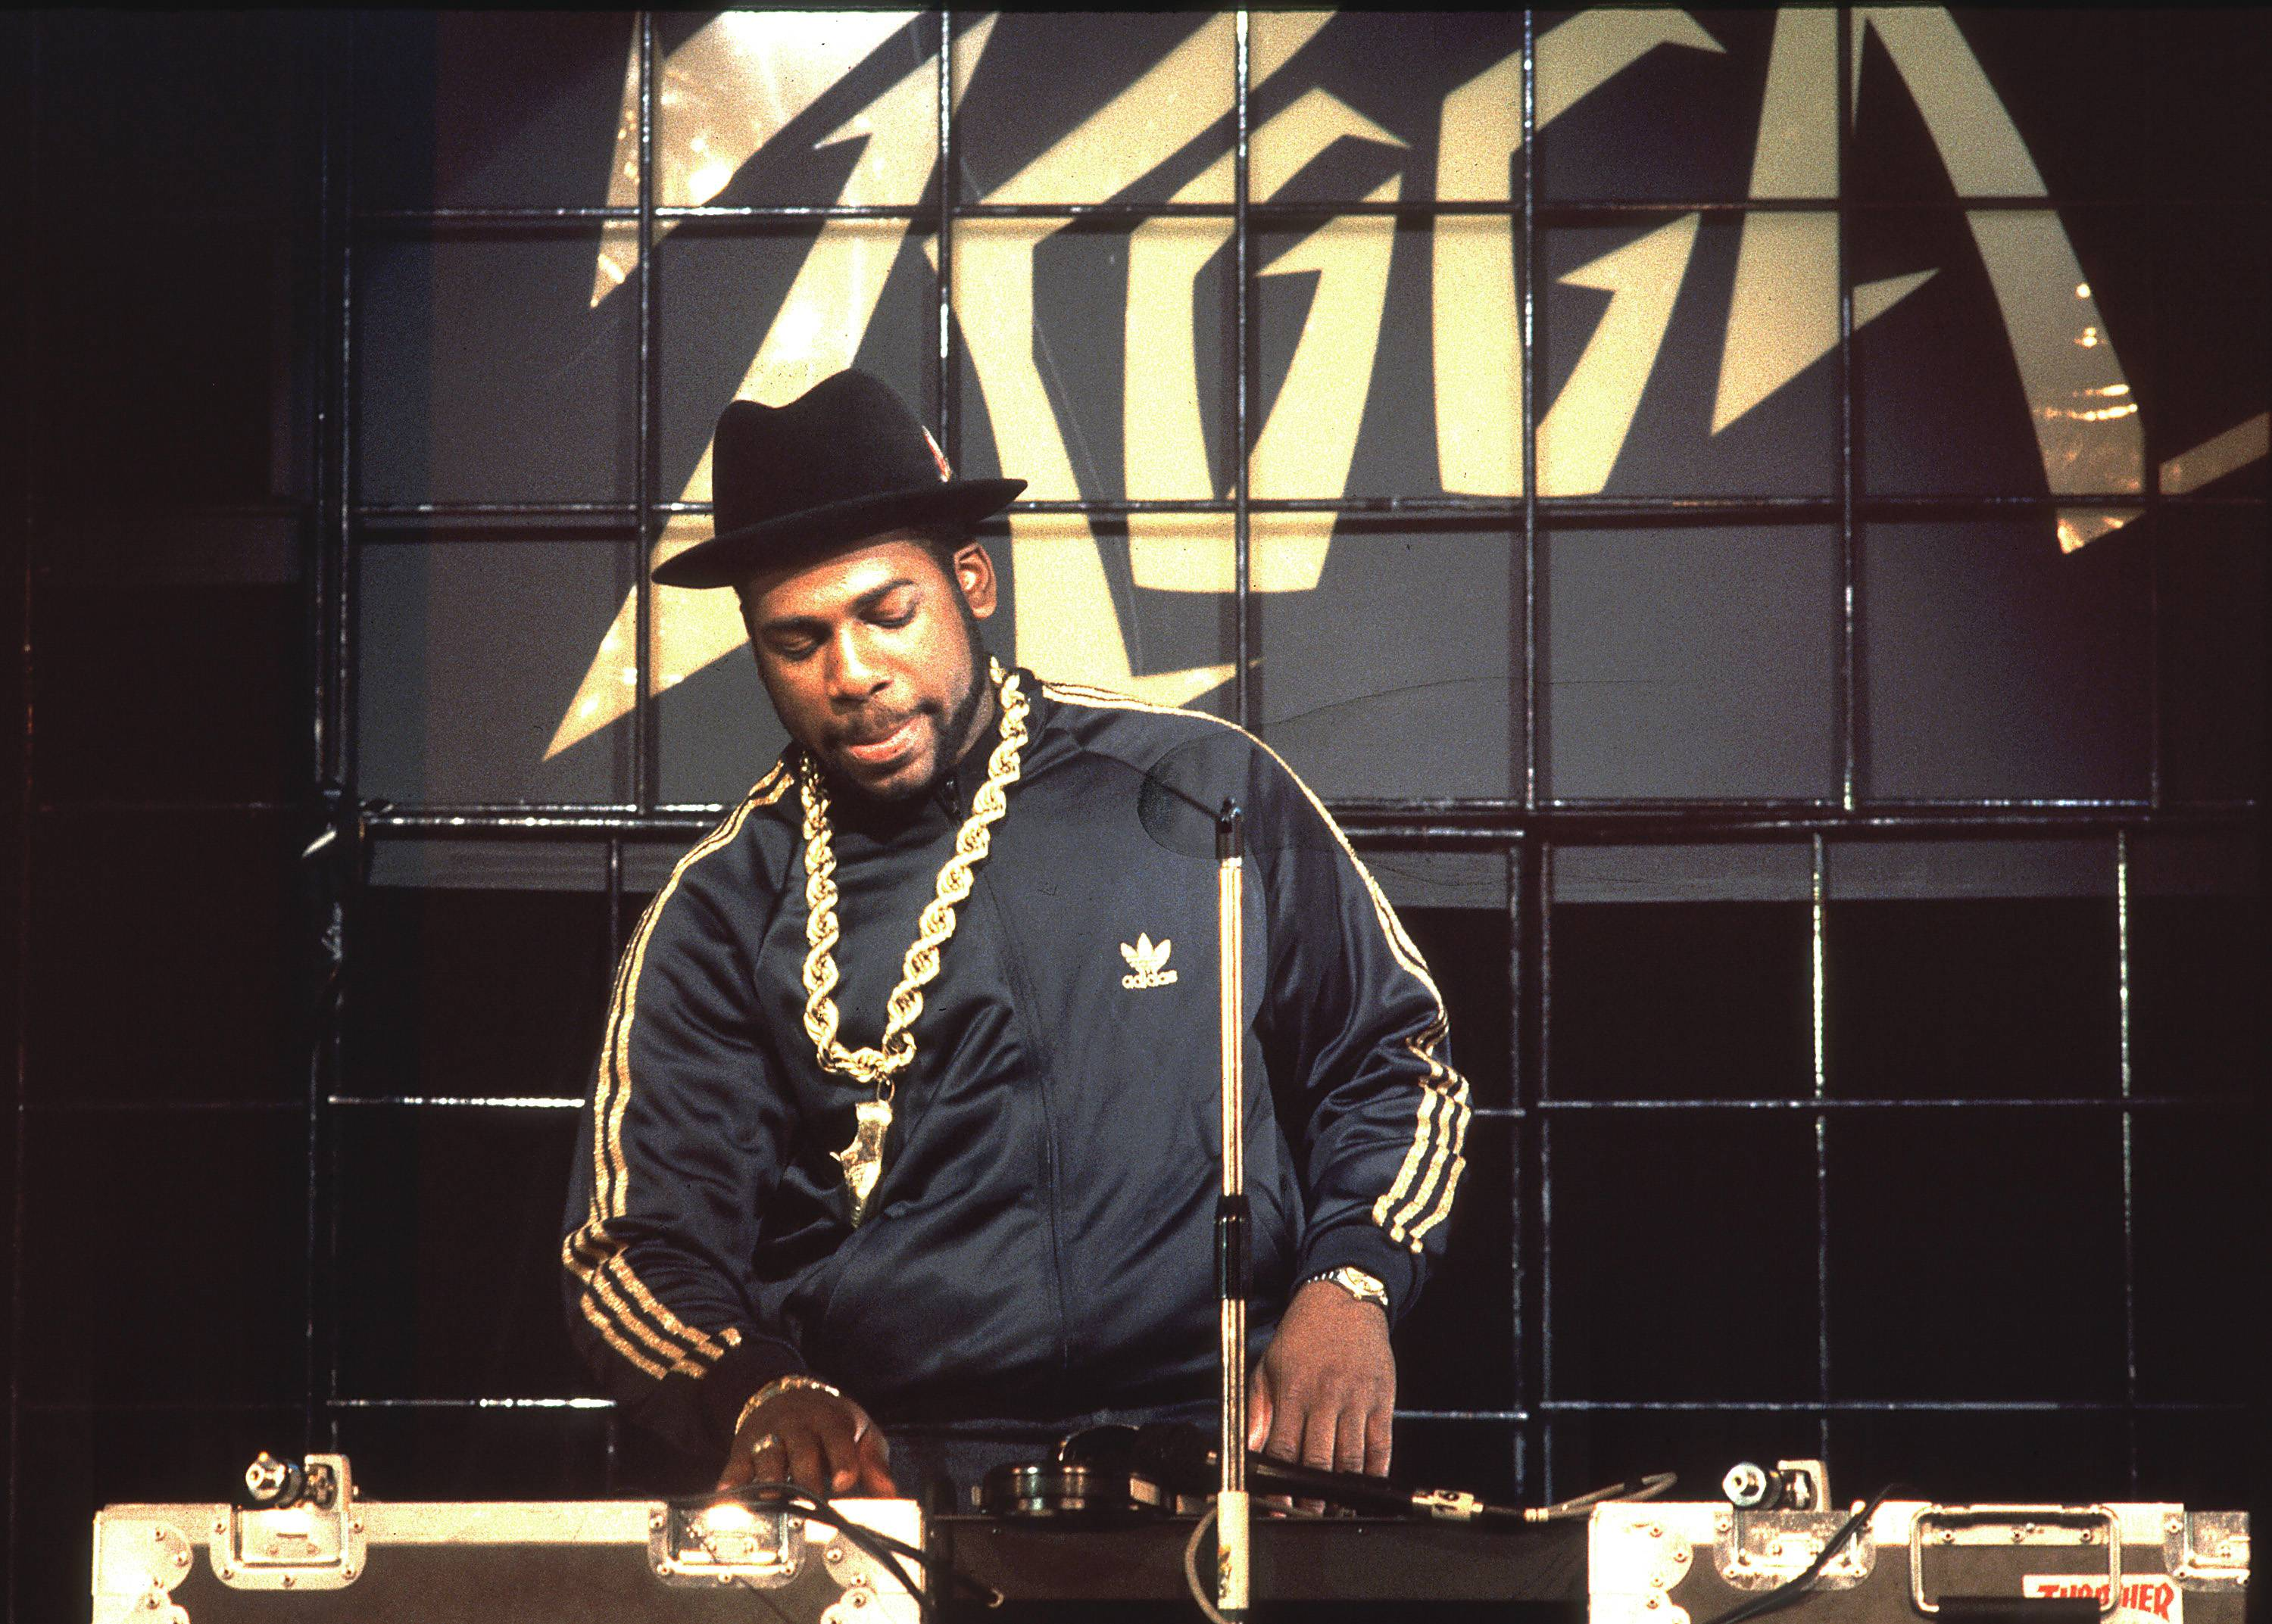 The 50 Most Influential DJs - 10 years ago today, October 30, Jam Master Jay was murdered in cold blood. The legendary DJ, one third of Run DMC, is missed, but his impact on hip hop hasn't faded one bit. Jam Master Jay helped bring DJing to radios, stereos and TVs across the globe. And DJs are still a cornerstone of the culture, preserving real hip hop on the air, onstage, in the clubs and elsewhere. In honor of Jam Master Jay and his indelible contributions to the art, craft and science of the turntable, BET.com is counting down the 50 most influential DJs of all time. We only considered folks who were DJs in the true, traditionalist, hip hop sense of the word ? rocking parties, mixing wax, breaking hit records, scratching samples, curating the culture ? not mere on-air personalities or producers with DJ in their name. Without these turntable all-stars, we can't imagine what DJin...